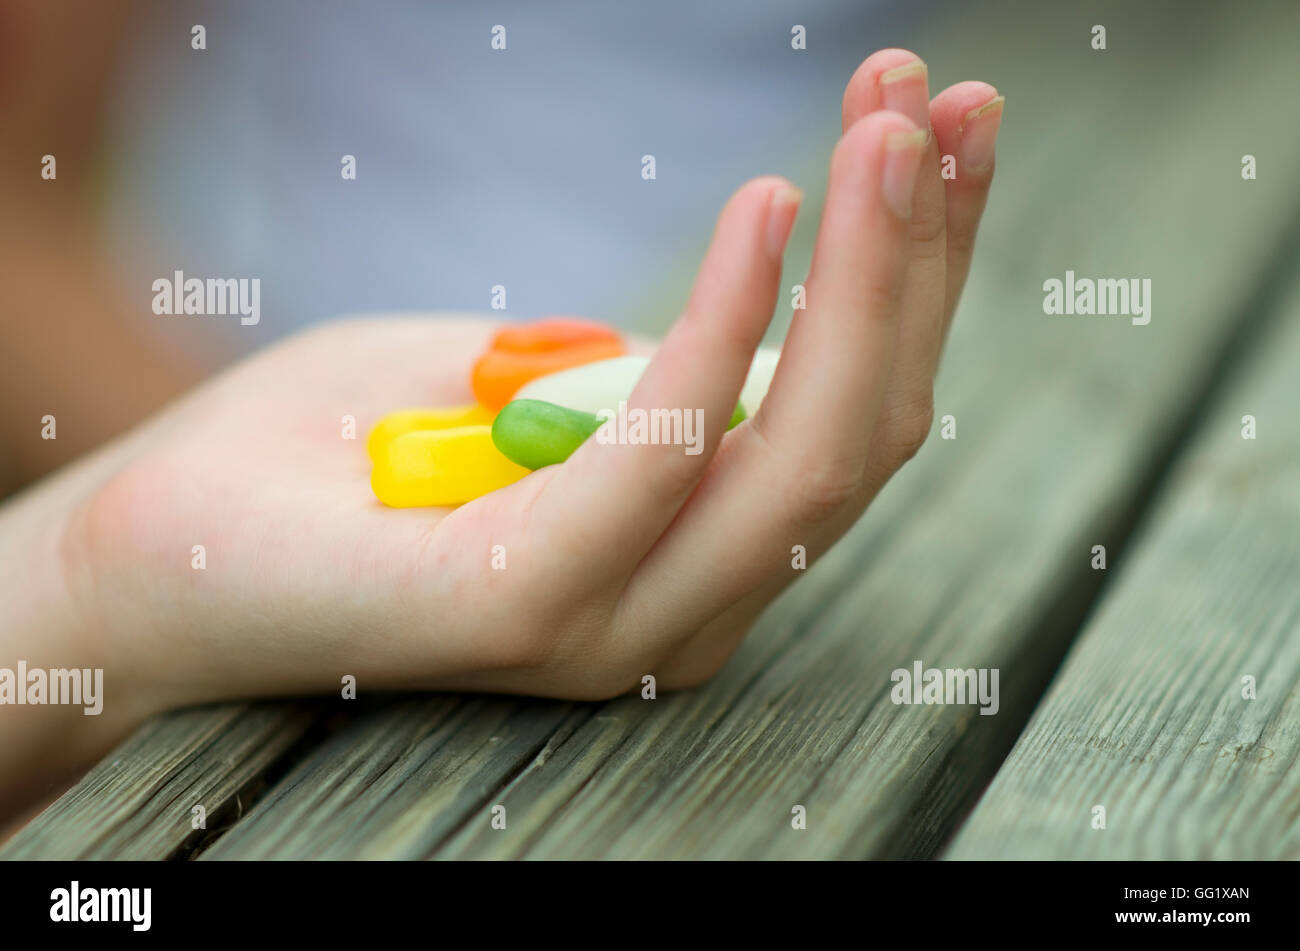 colourful-jelly-beans-in-a-cupped-hand-G